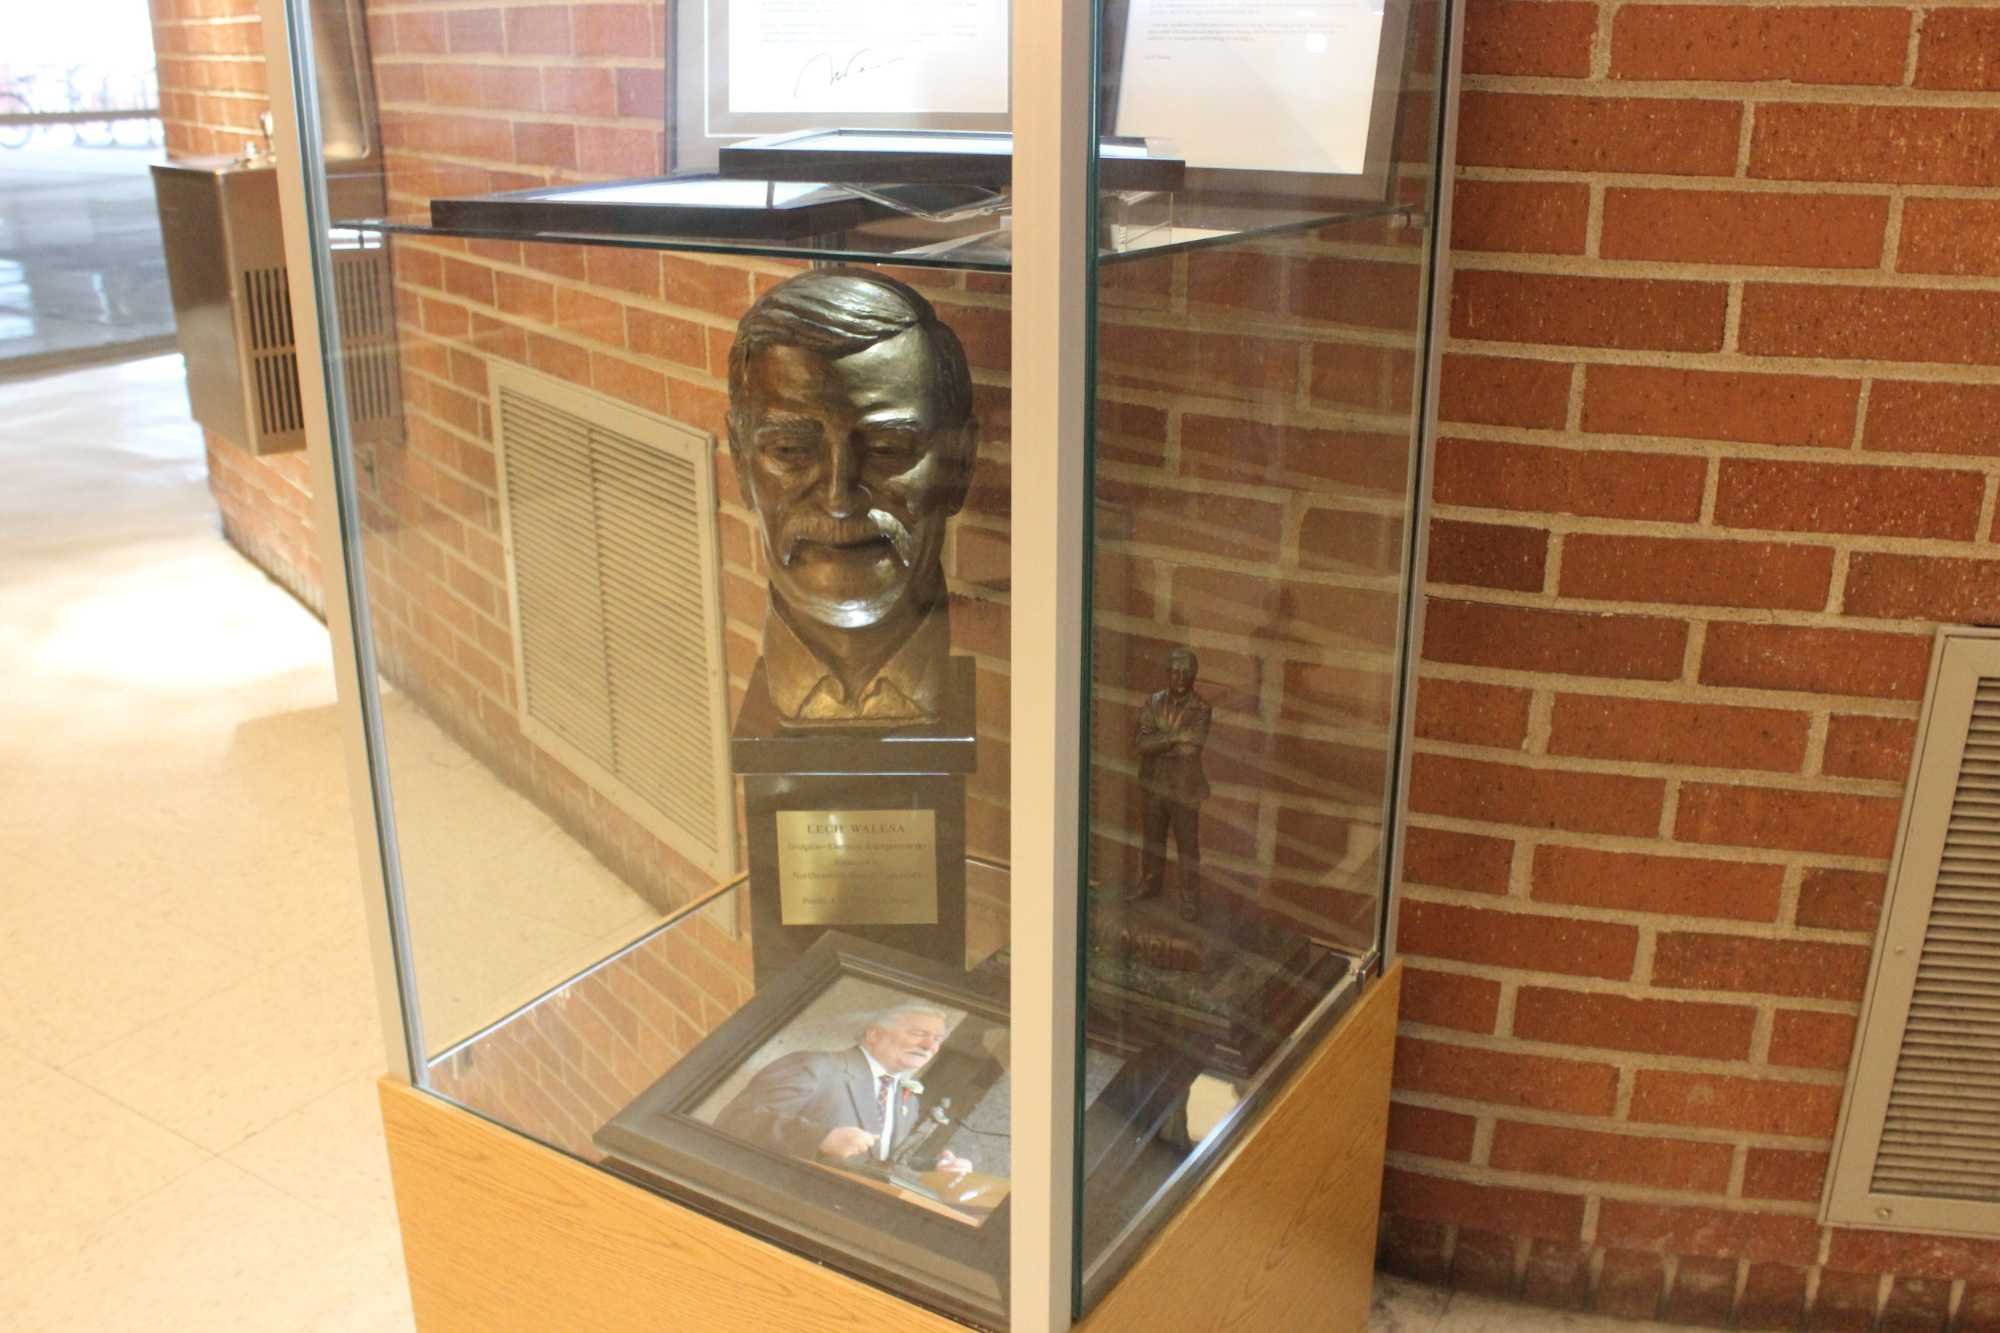 A display shows a bronze bust and Walesa's written letters to NEIU.